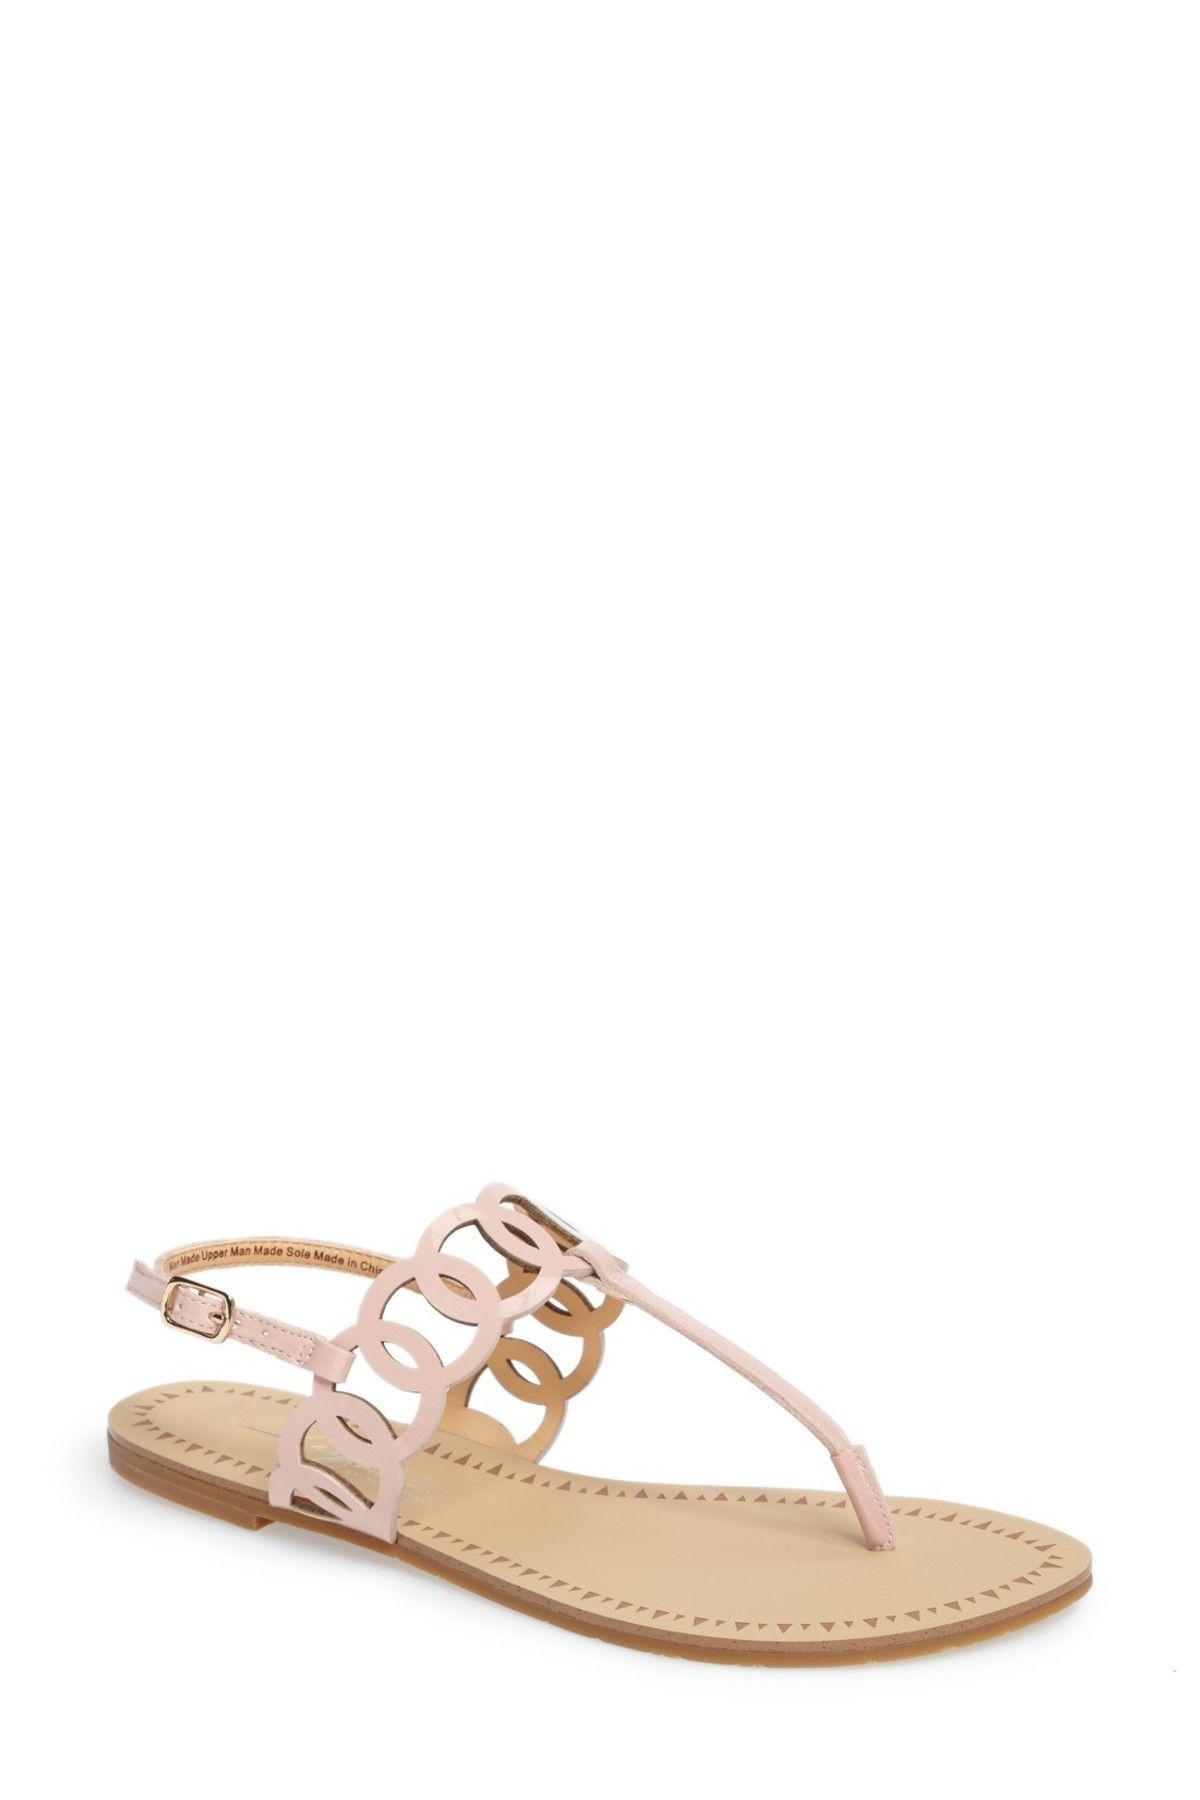 49a87974606107 Mallory Ringed Sandal by Daya by Zendaya on  nordstrom rack